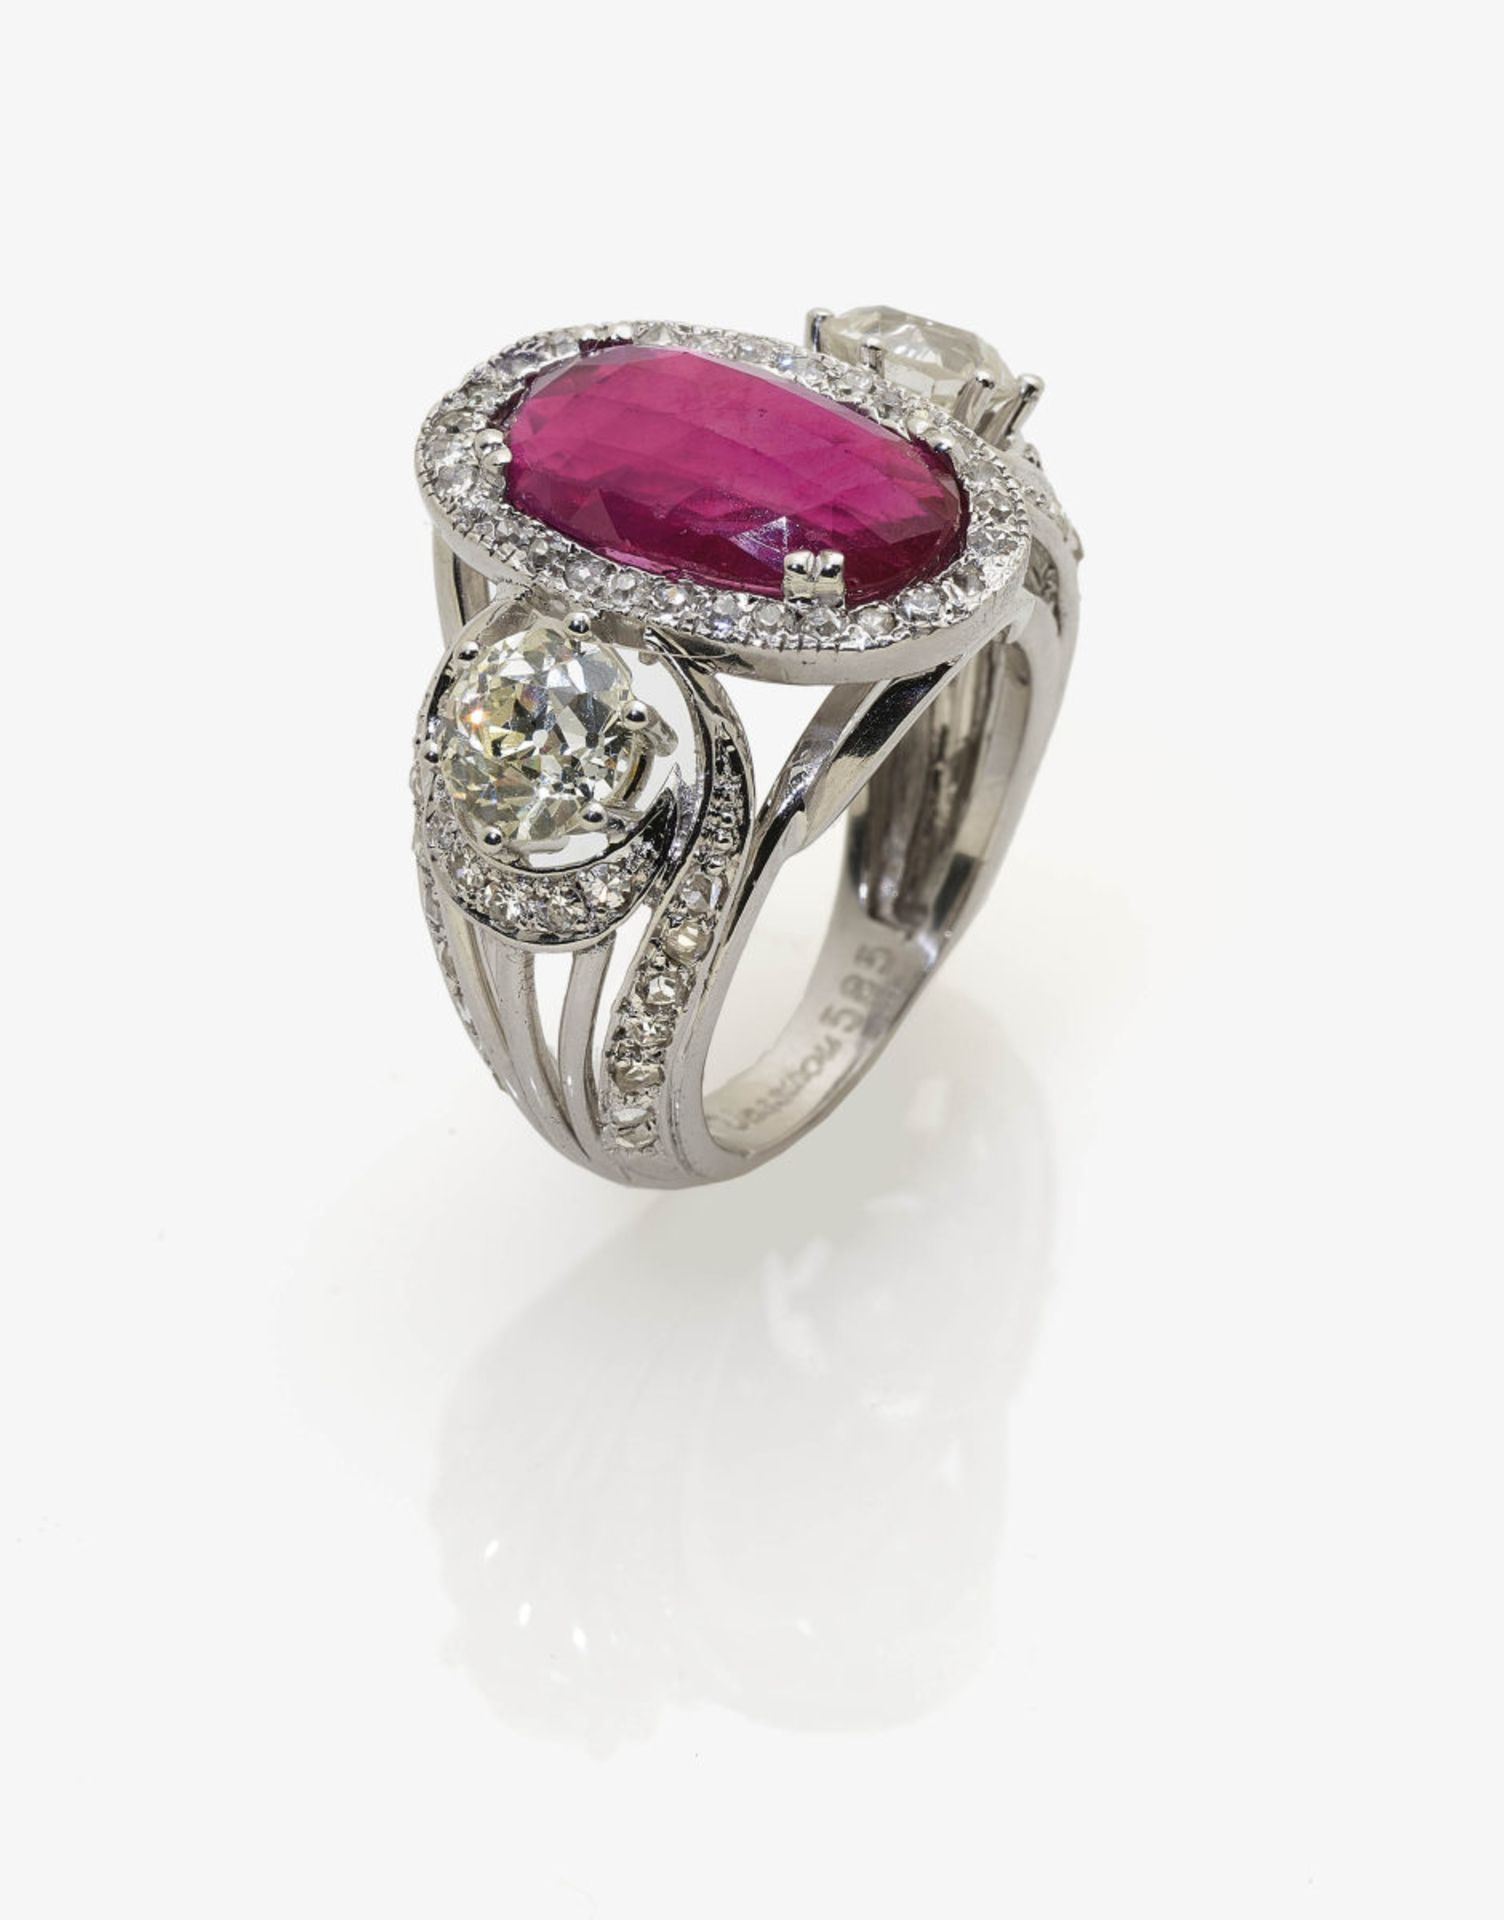 Los 1043 - A Diamond and Ruby Ring